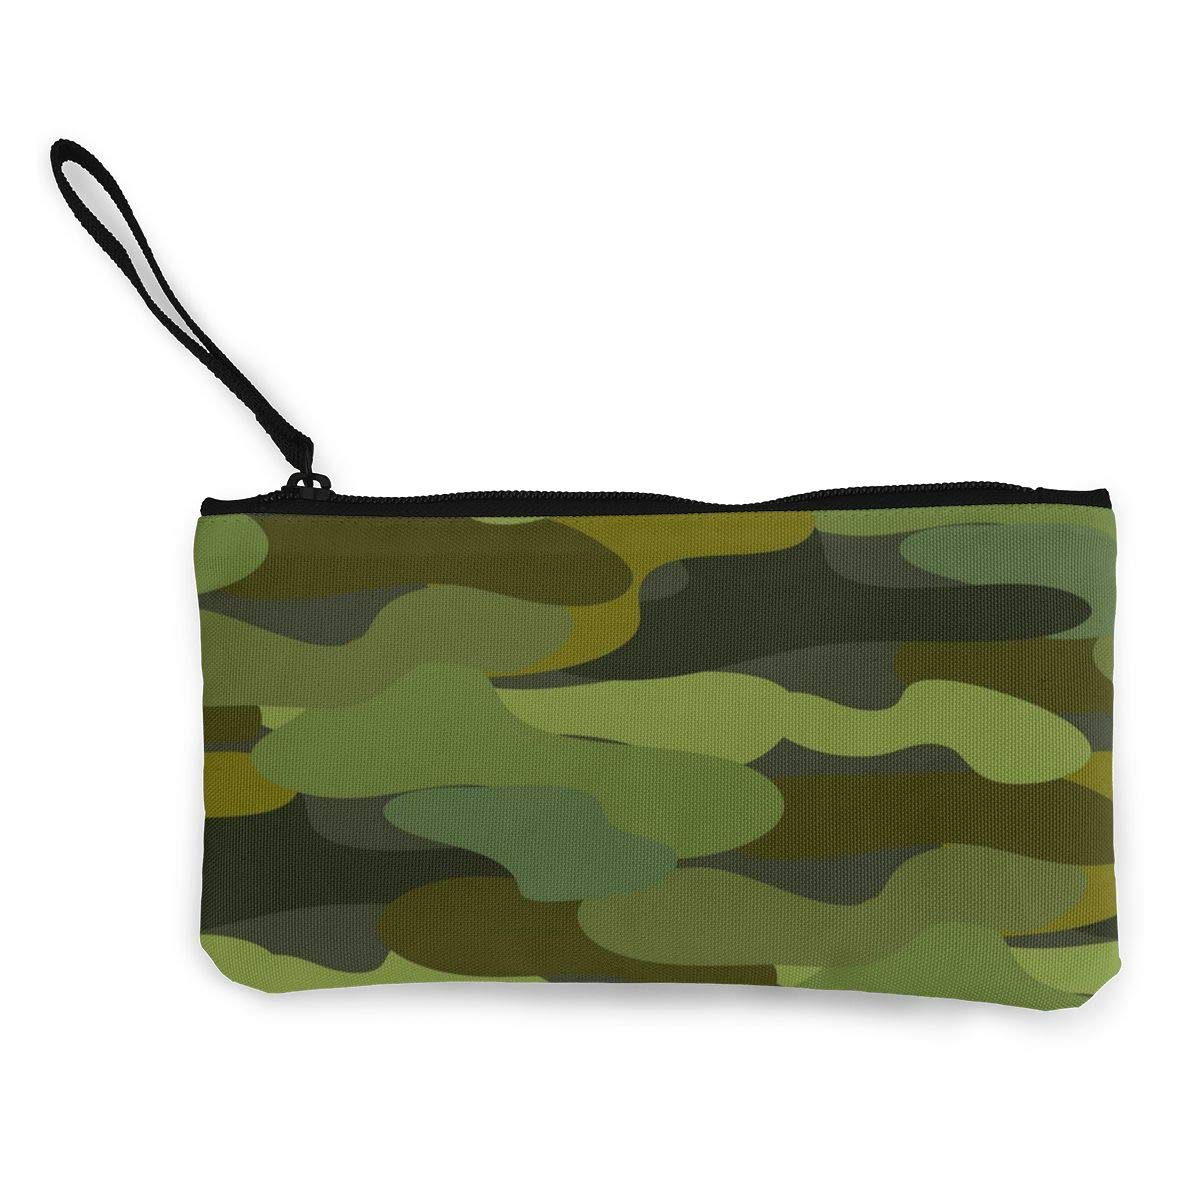 Yamini Khaki Camouflage Seamless Pattern Cute Looking Coin Purse Small and Exquisite Going Out to Carry Purse